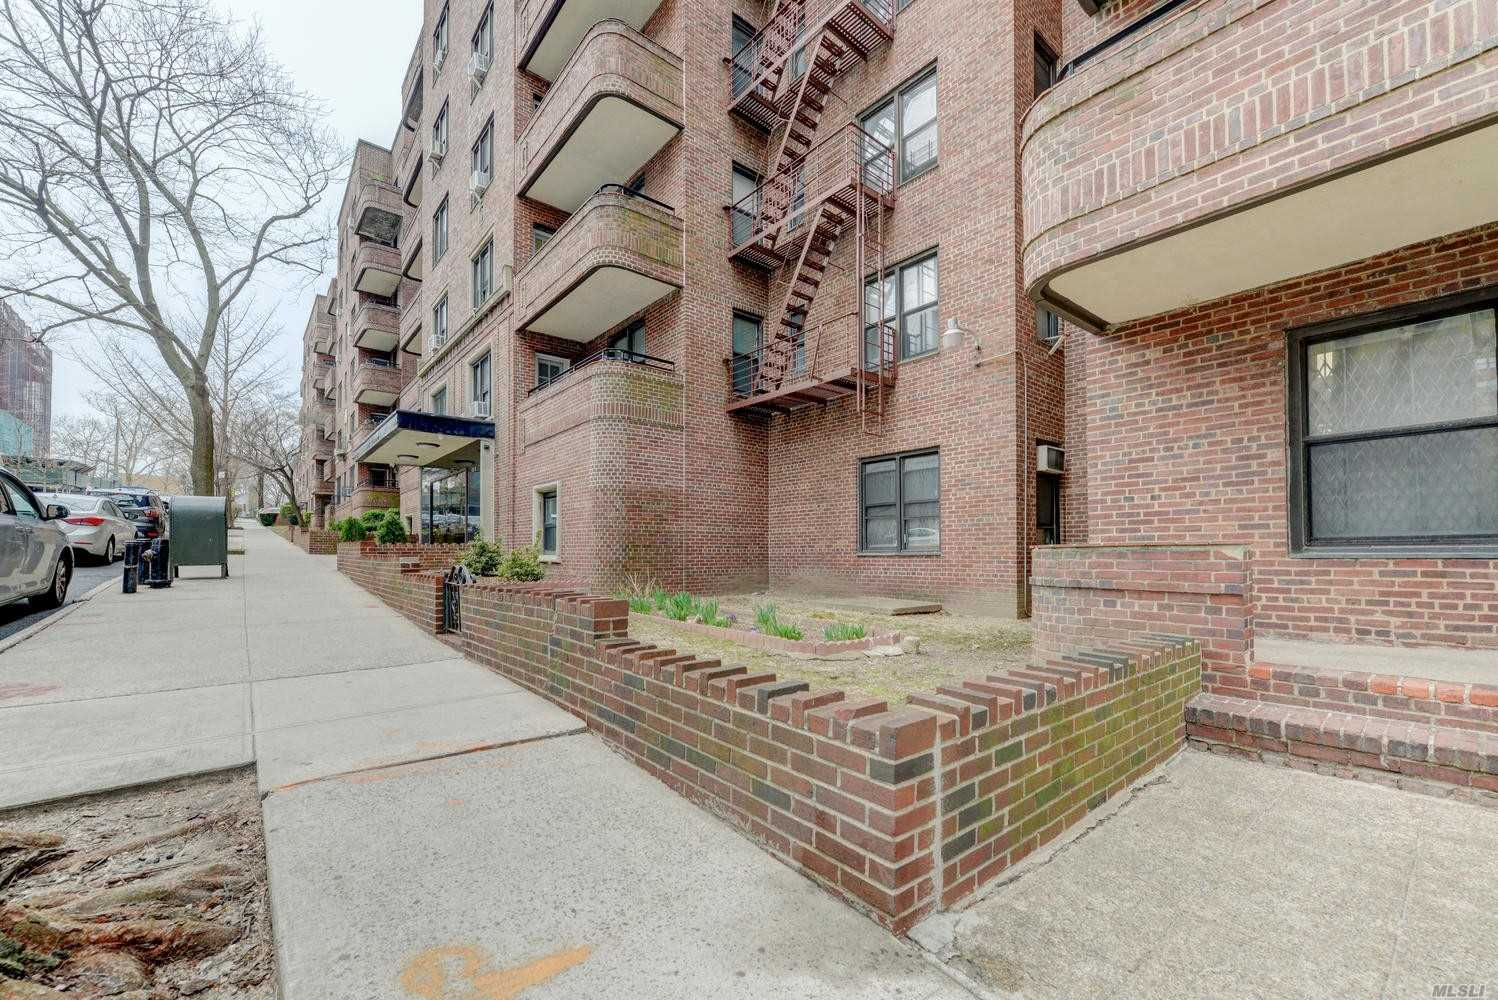 Well-Kept Bright 2 Bedroom/Jr4 With Terrace At Hampton House. Great Layout. Foyer Is Large Enough For Full Dining Table, Large Living Room With Terrace, Open Kitchen With Plenty Of Counter And Cabinet Space. A Hallway Separates The Main Bedroom And The 2nd Bedroom Fits A Full Sized Bed With 2 Exposures. Building Amenities Include 18 Hour Doorman, Outdoor Common Areas Complete With A Private Dog Run, And Laundry Room. Indoor Valet Parking $140 Per Month. Near LIRR, E & F Train. Sublets Allowed.